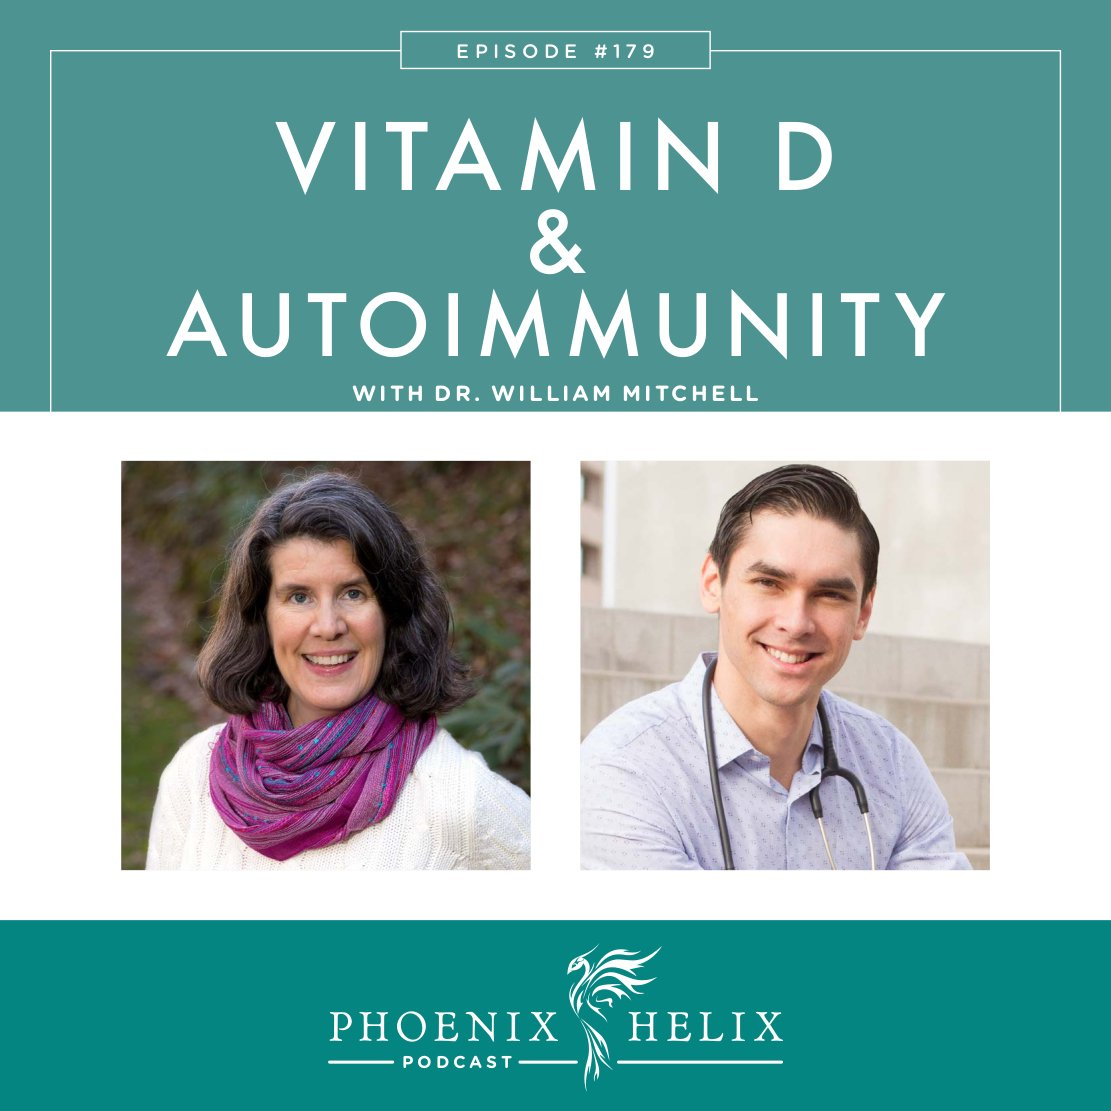 Vitamin D and Autoimmune Disease with Dr. William Mitchell   Phoenix Helix Podcast